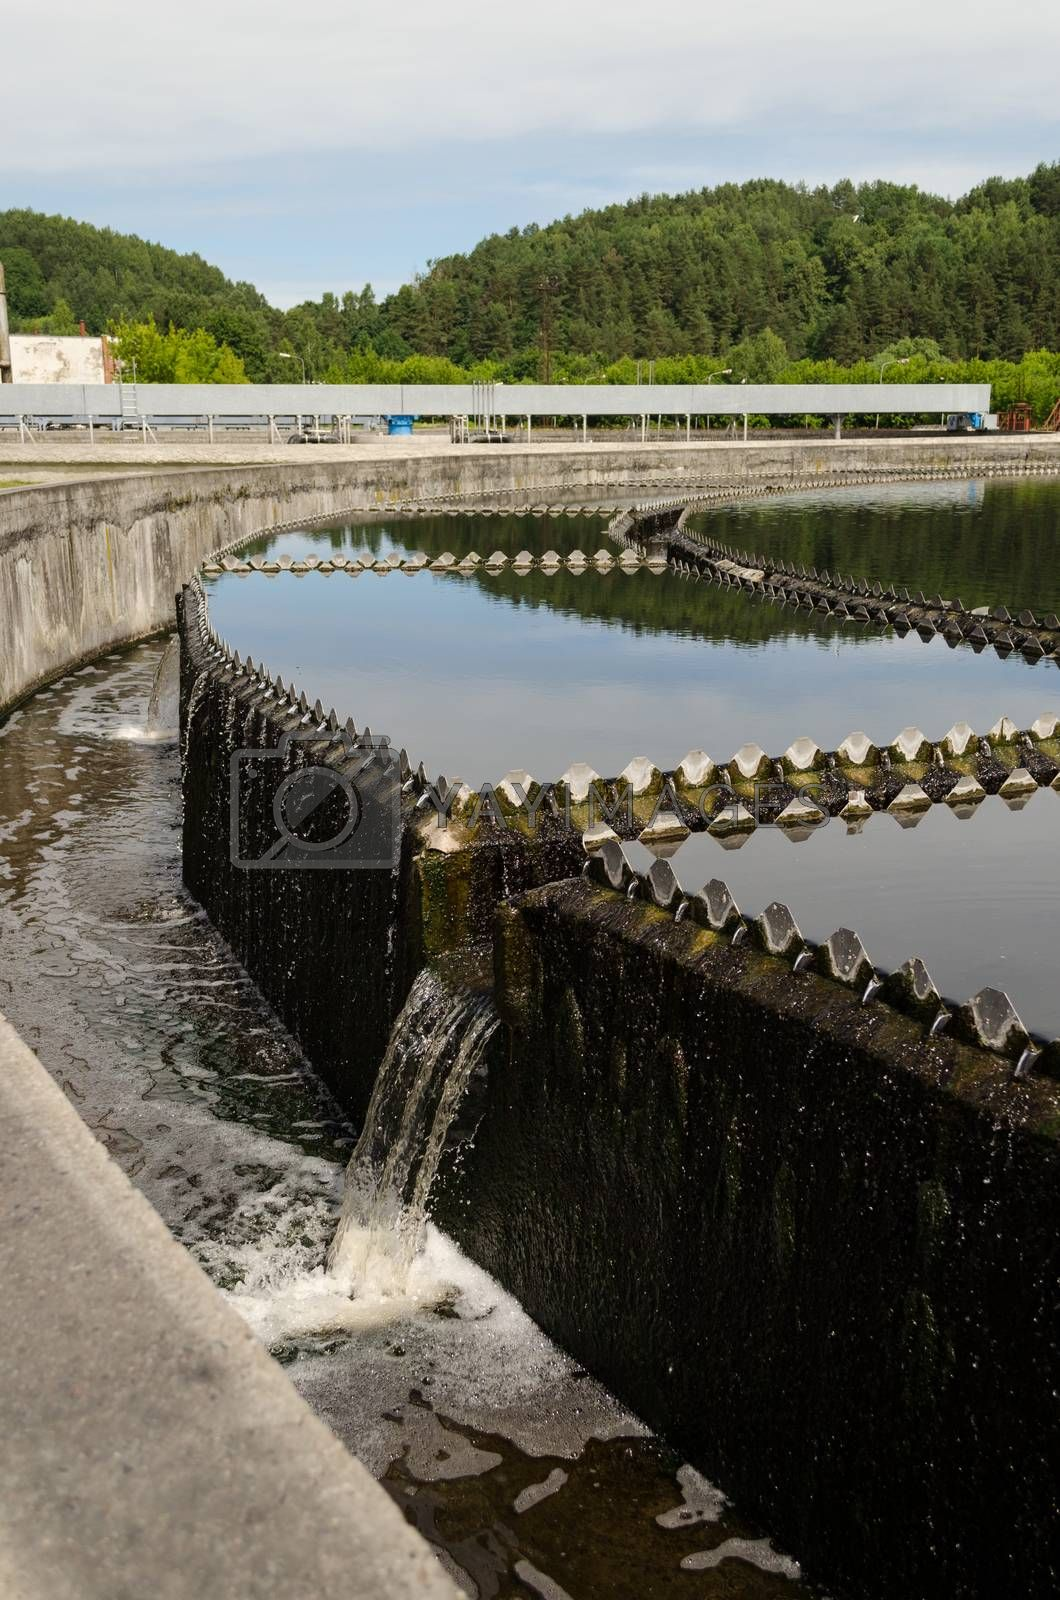 Reservoir of cleaned sewage water clarification step in treatment waterworks. Birds swim.